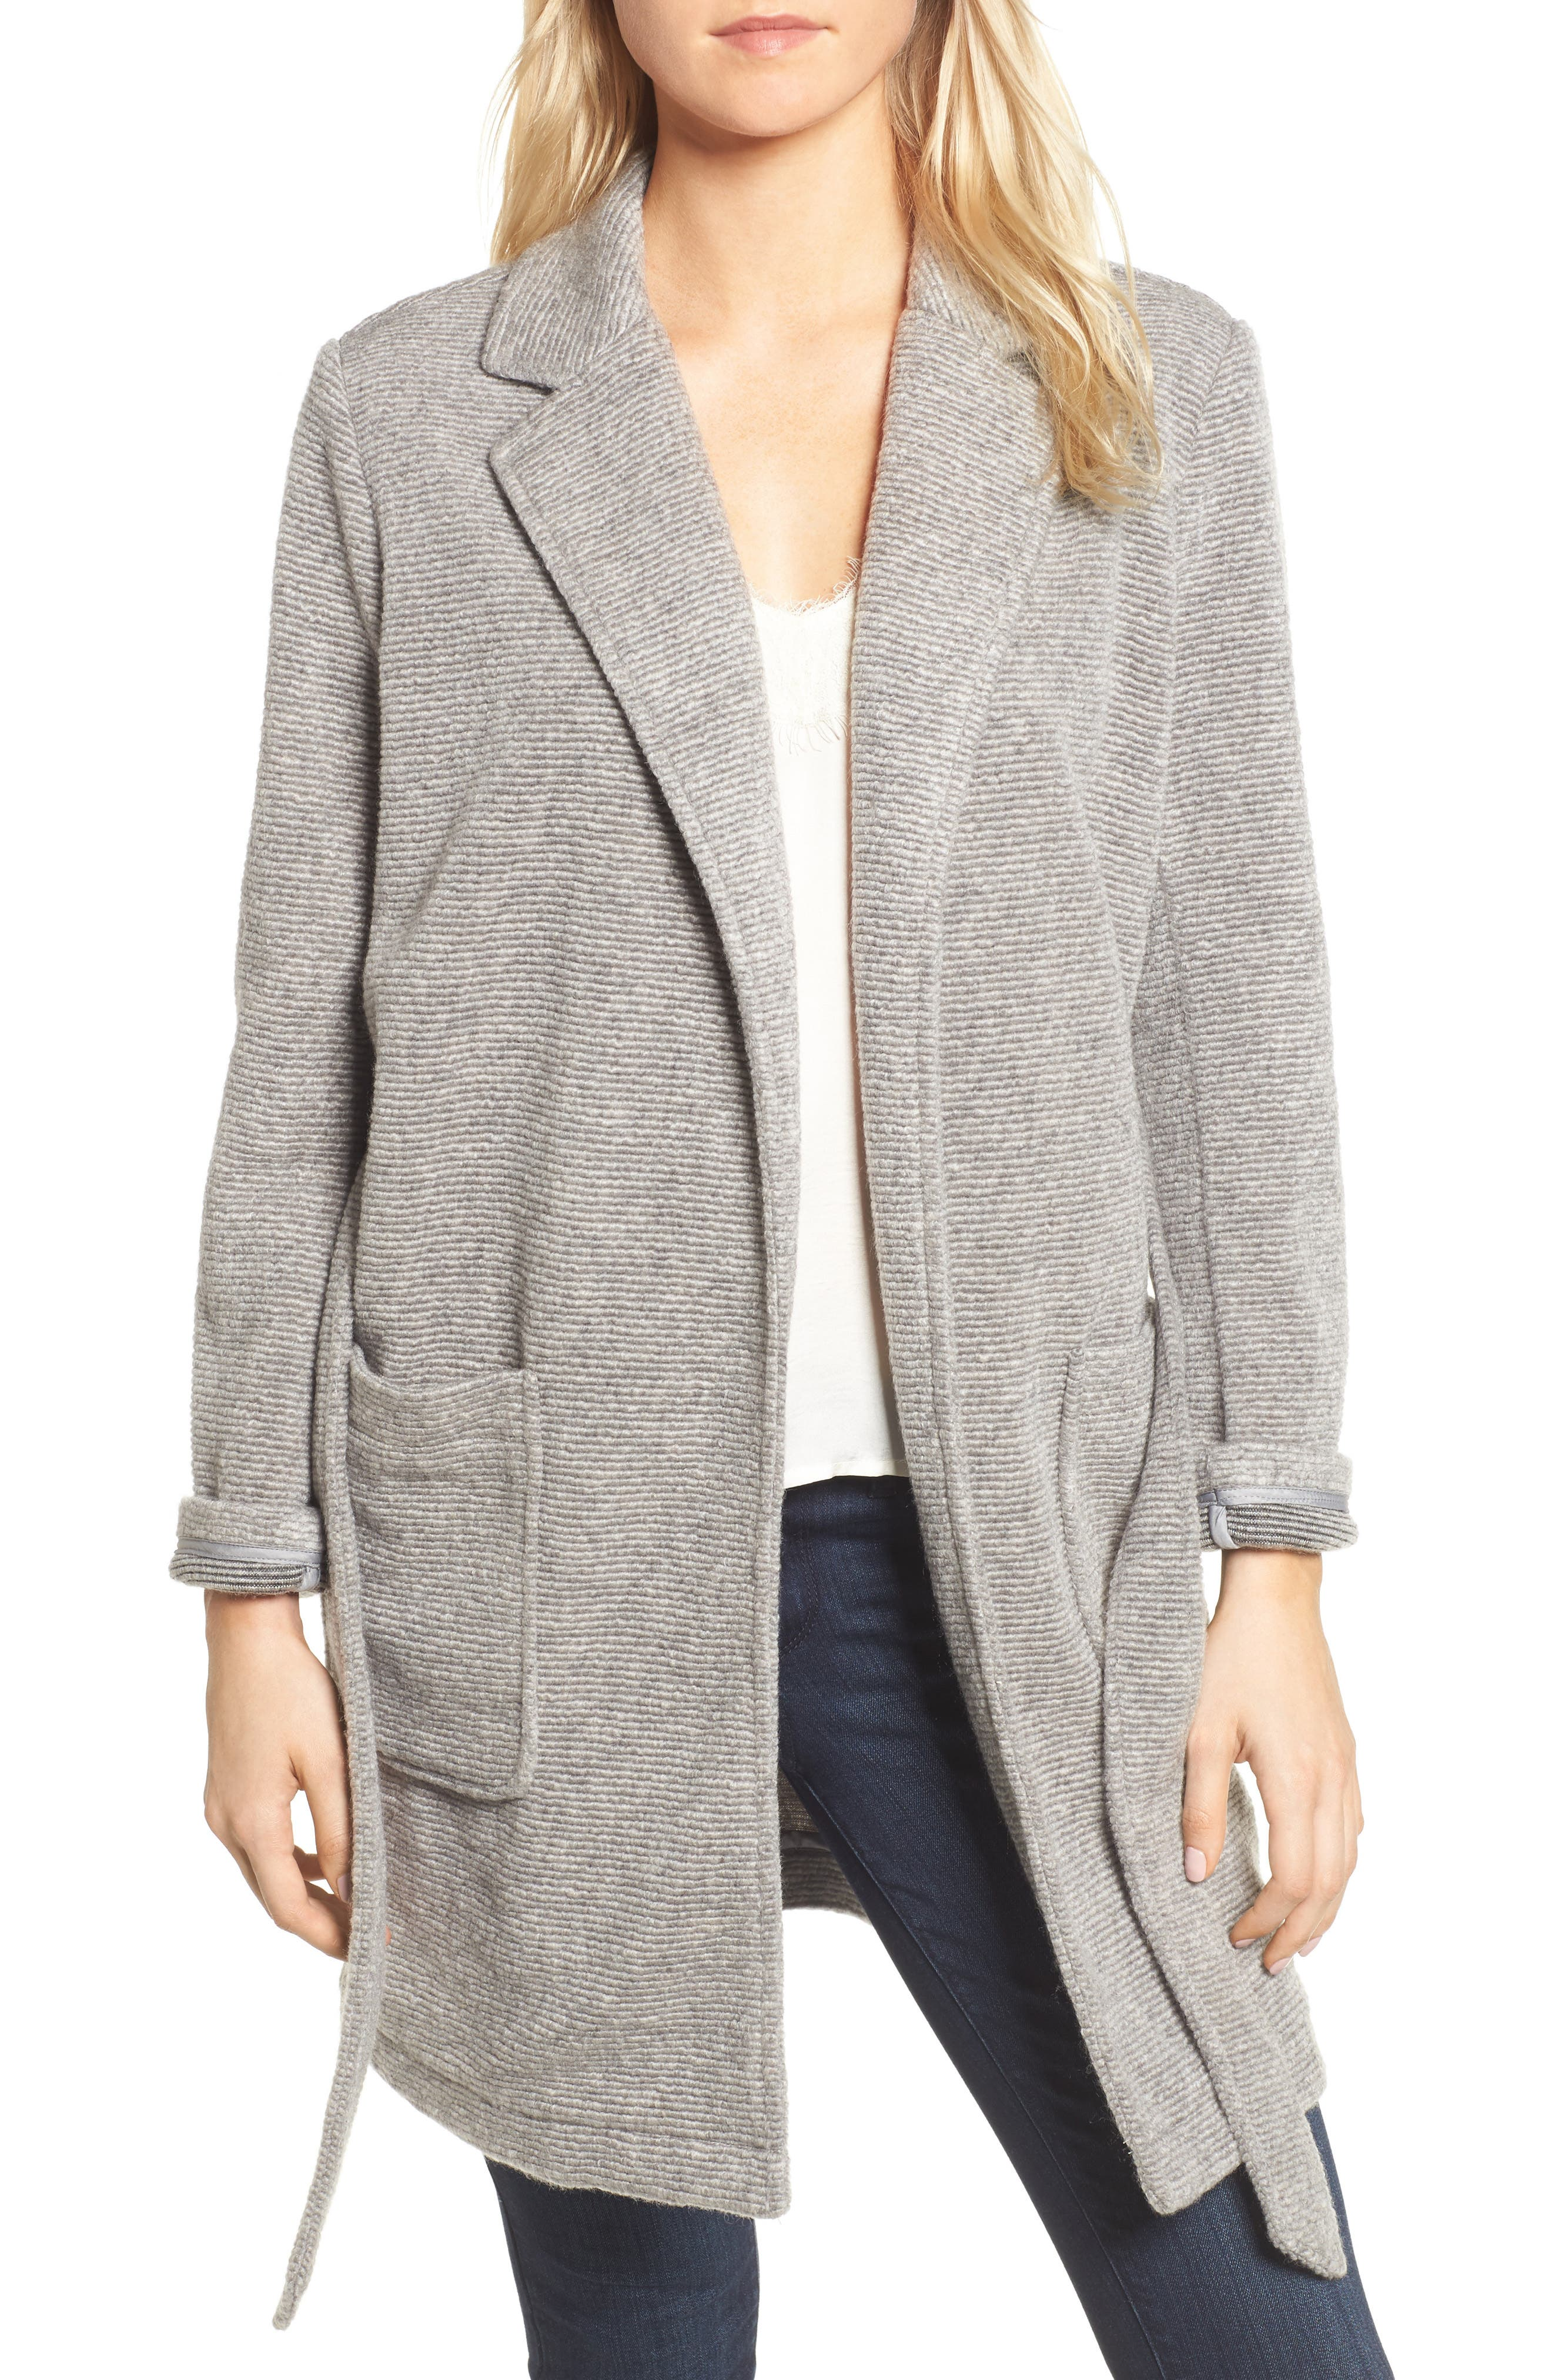 cupcakes and cashmere Cyrus Wrap Jacket